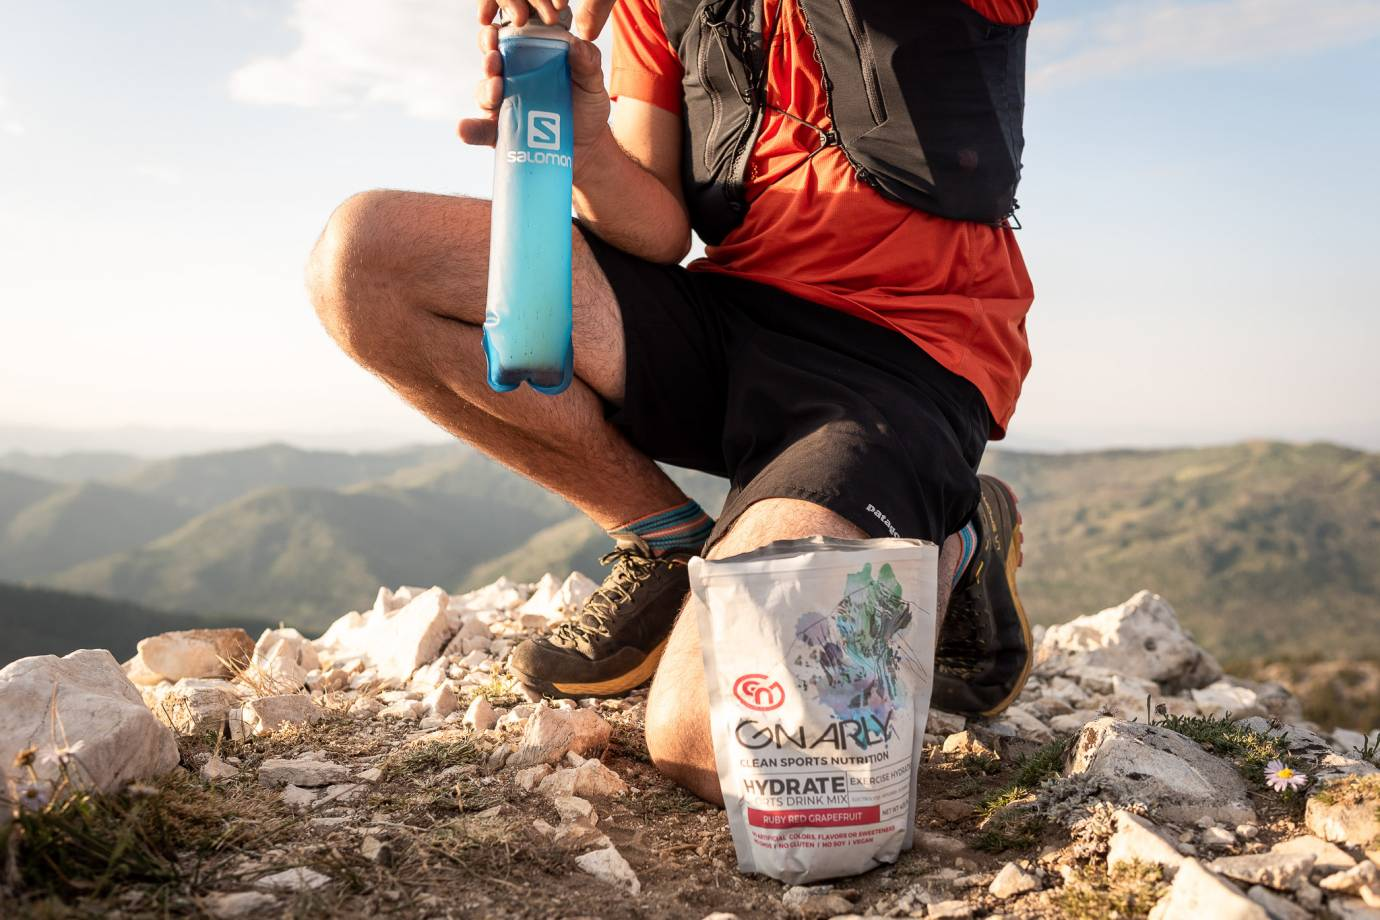 trail runner gnarly hydrate mix